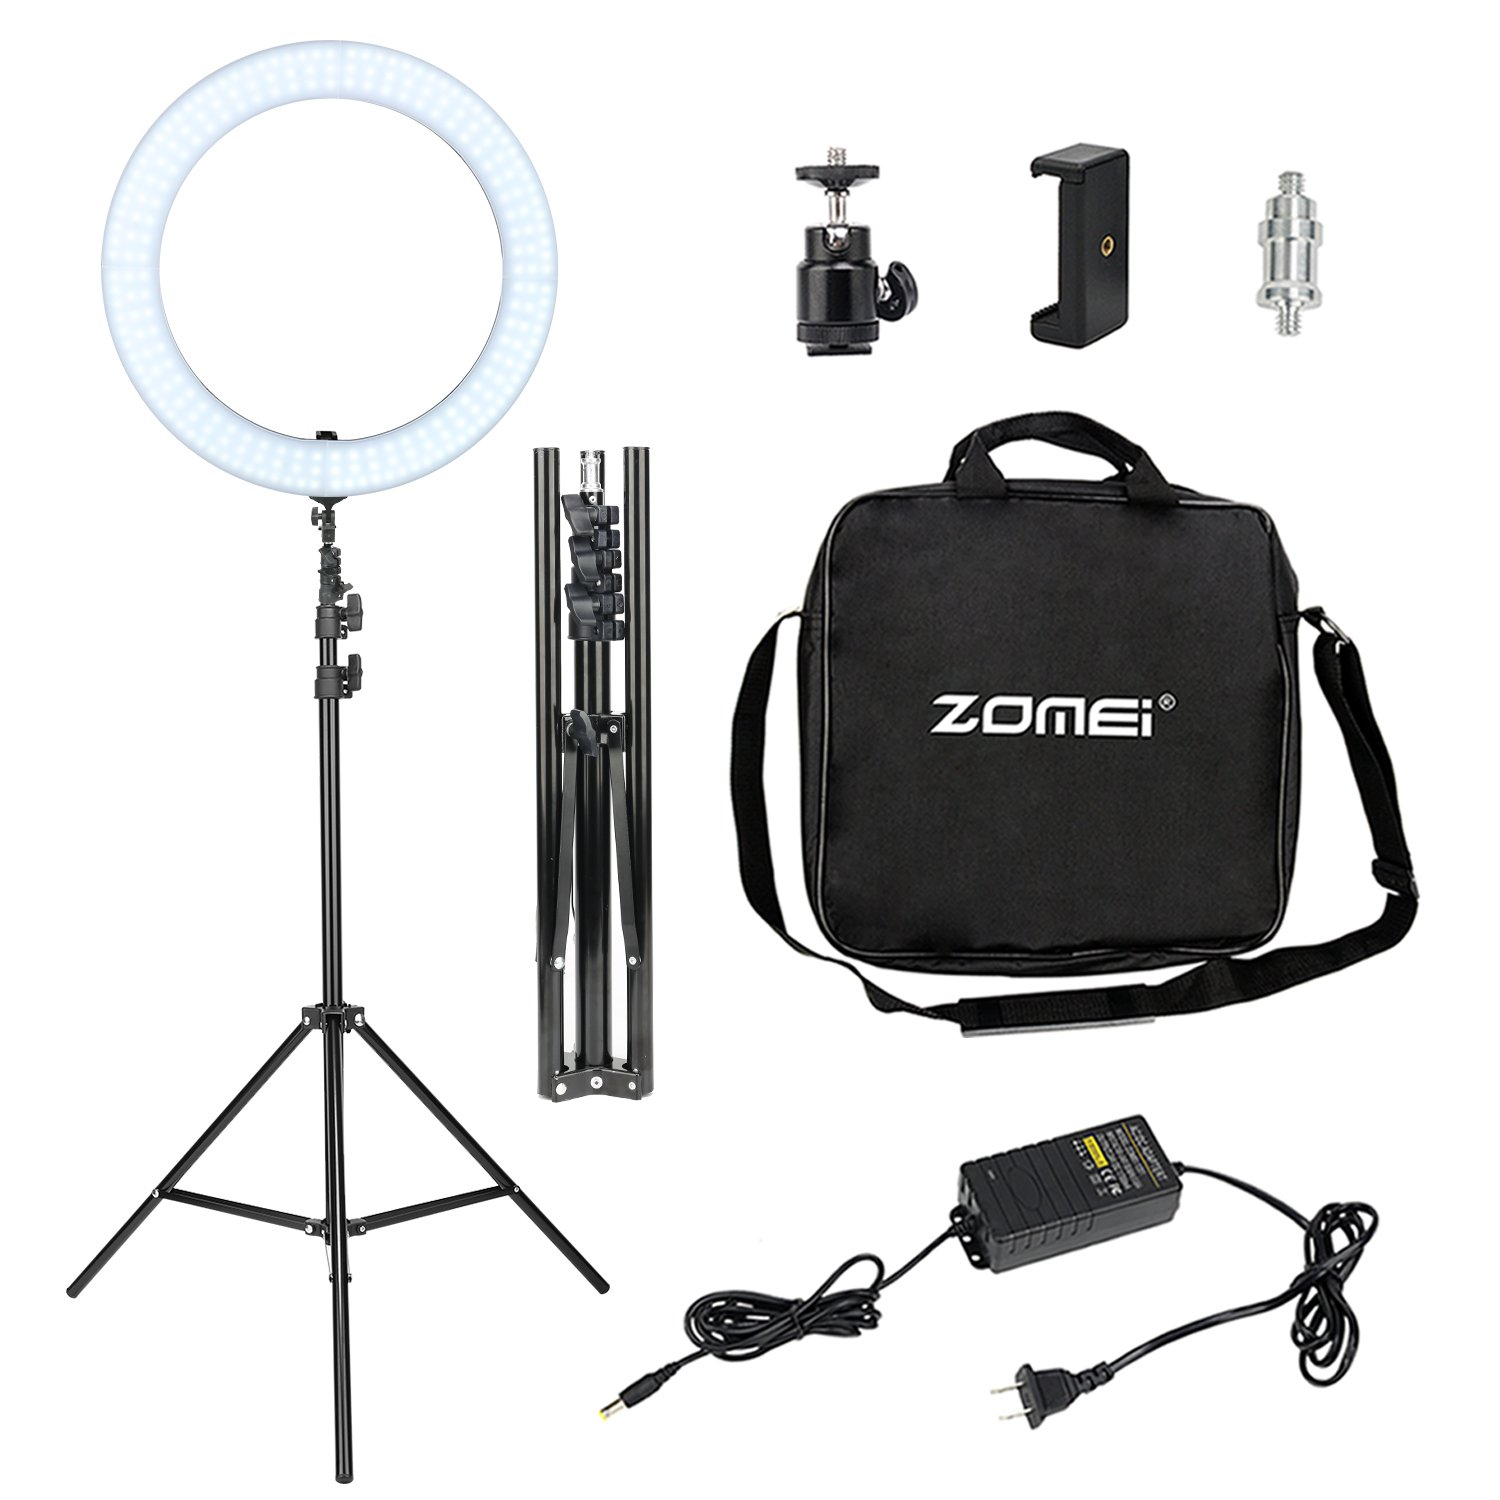 LED Ring Light with Stand, Zomei 18 Inches Ring Light for Camera Smartphone Youtube Video Shooting and makeup, Dimmable 2700-5500K Studio Lighting with Phone Holder, Hot Shoe and Carrying bag by ZoMei